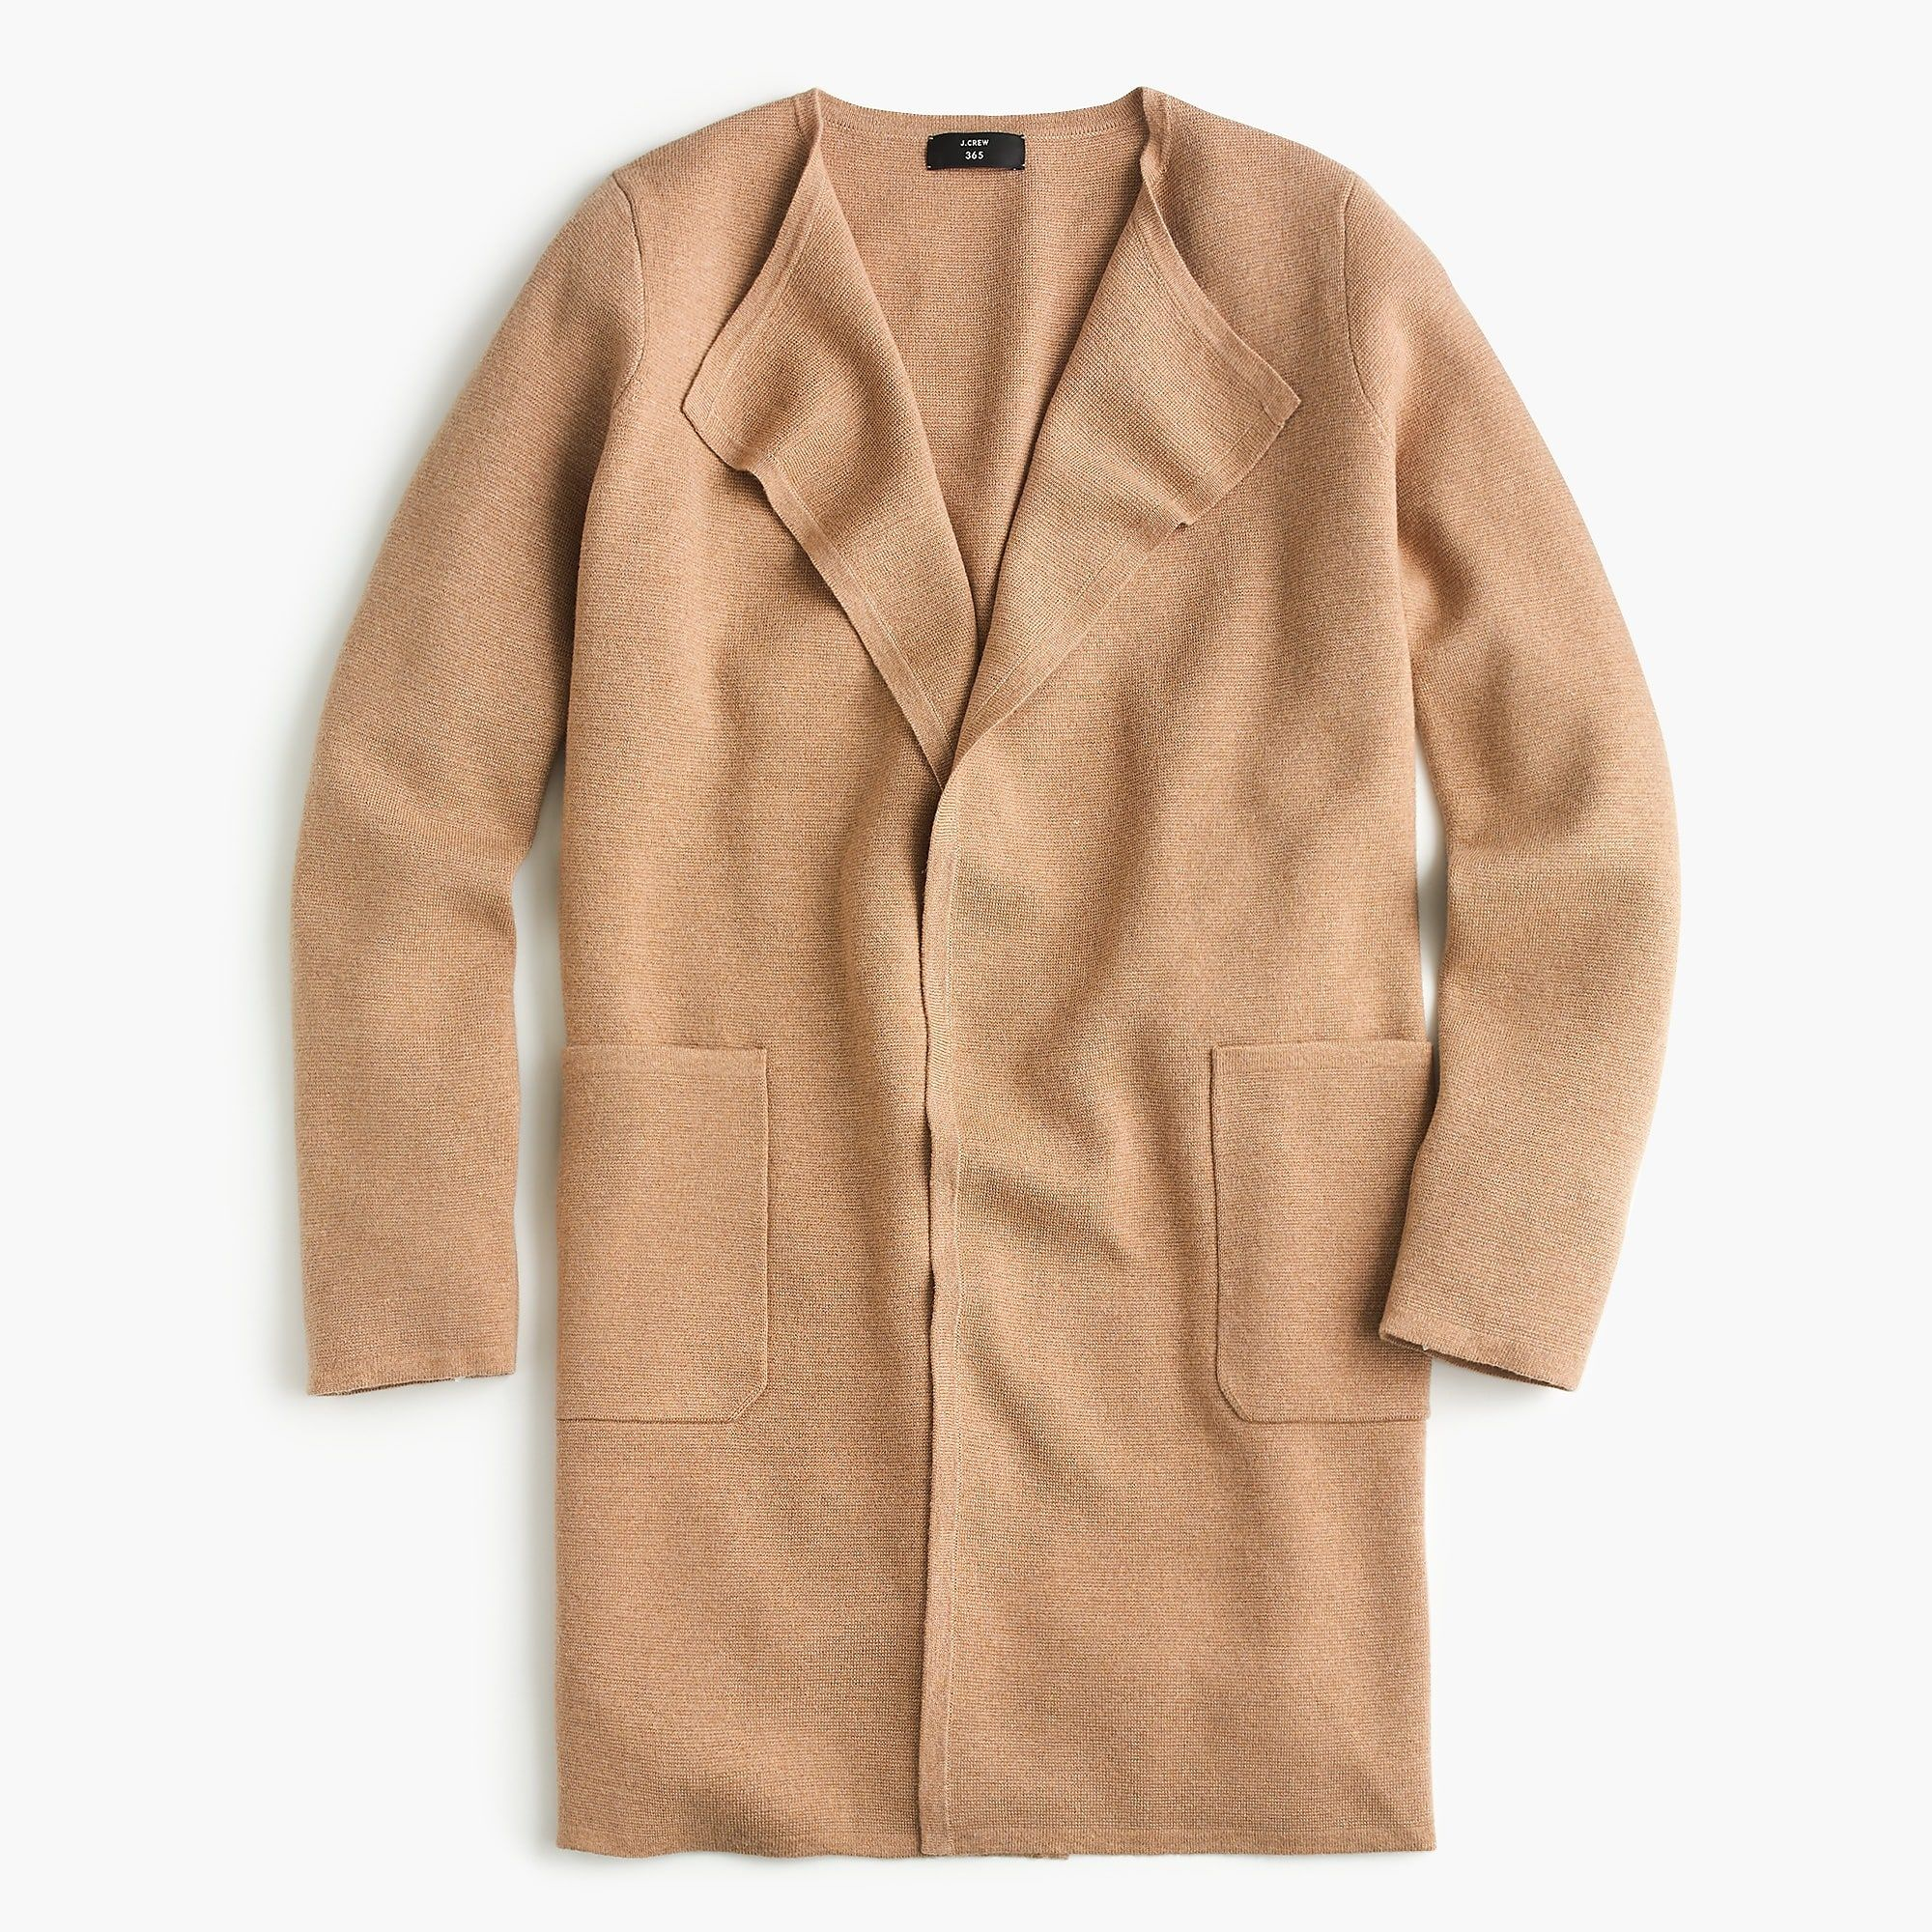 35976591dcd9d Would be perfect with a white button down collar shirt and black ankle  dress pants. Perfect as a cardigan   blazer or to keep you warm as a trench  coat ...